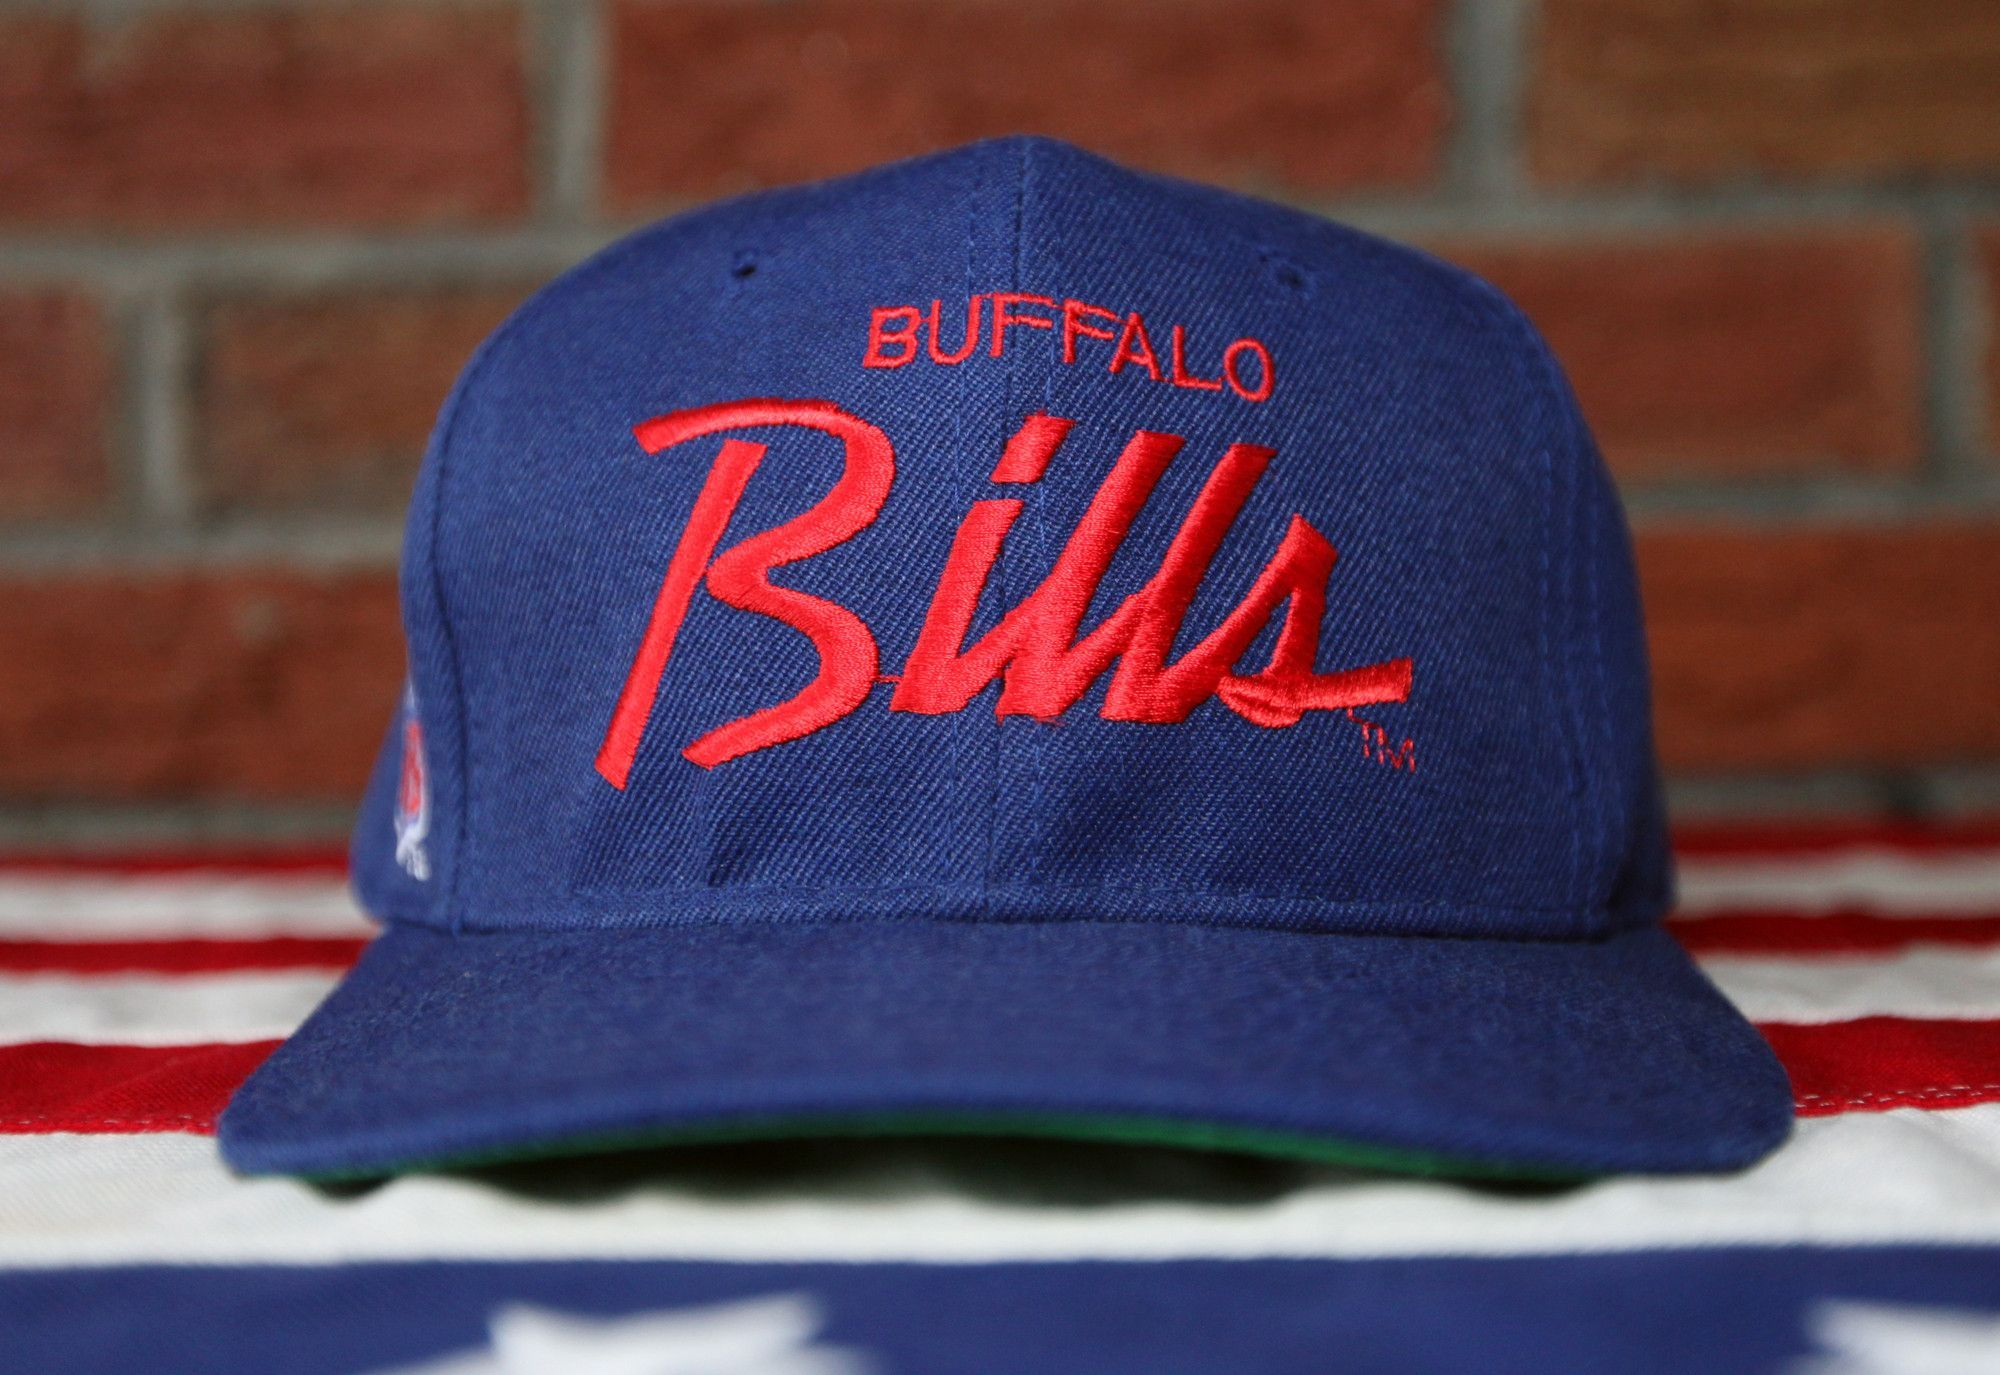 9eb75cf9d87 Vintage 90 s Buffalo Bills Sports Specialties Single Line Script The Pro  Wool Snapback Hat